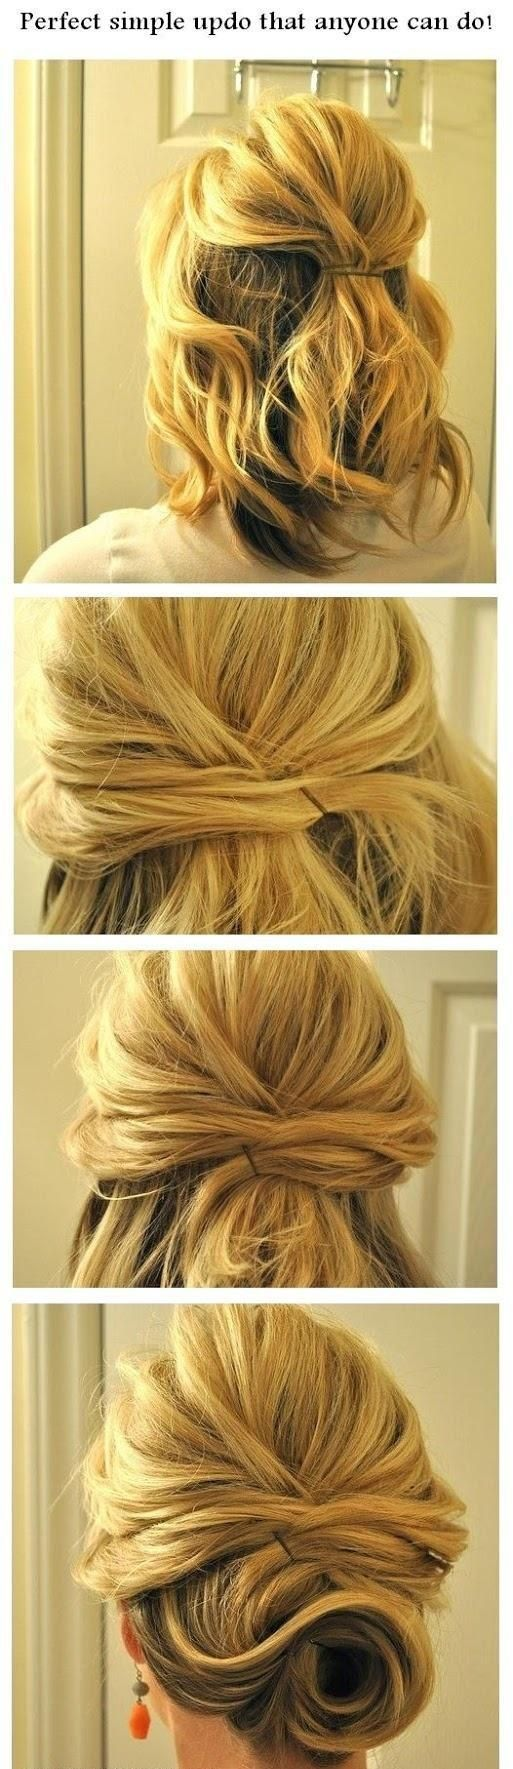 Perfect simple updo that anyone can do hairstyles tutorial her